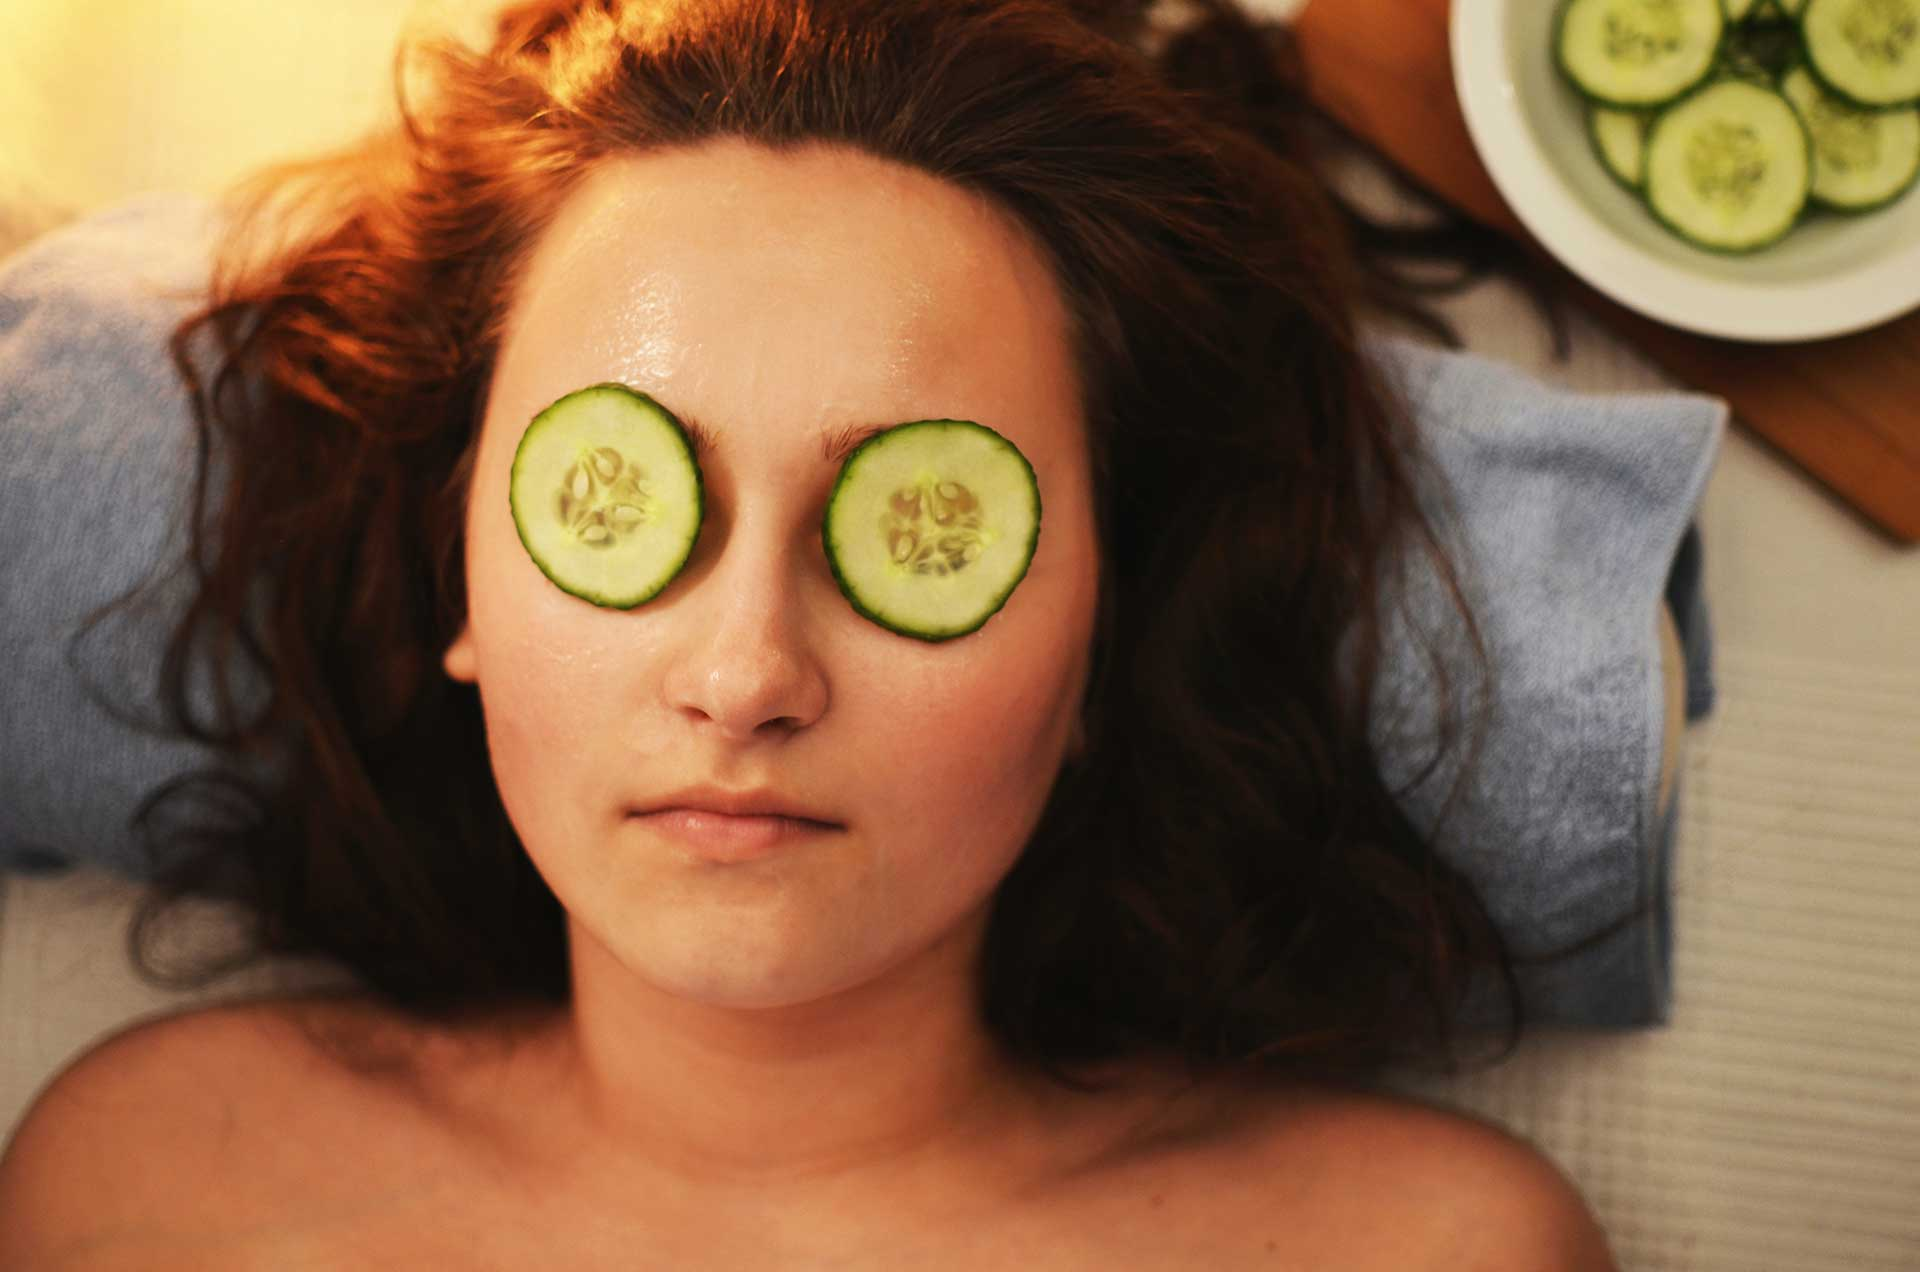 face of woman laying down with cucumber slices over her eyes at tlc salon and spa